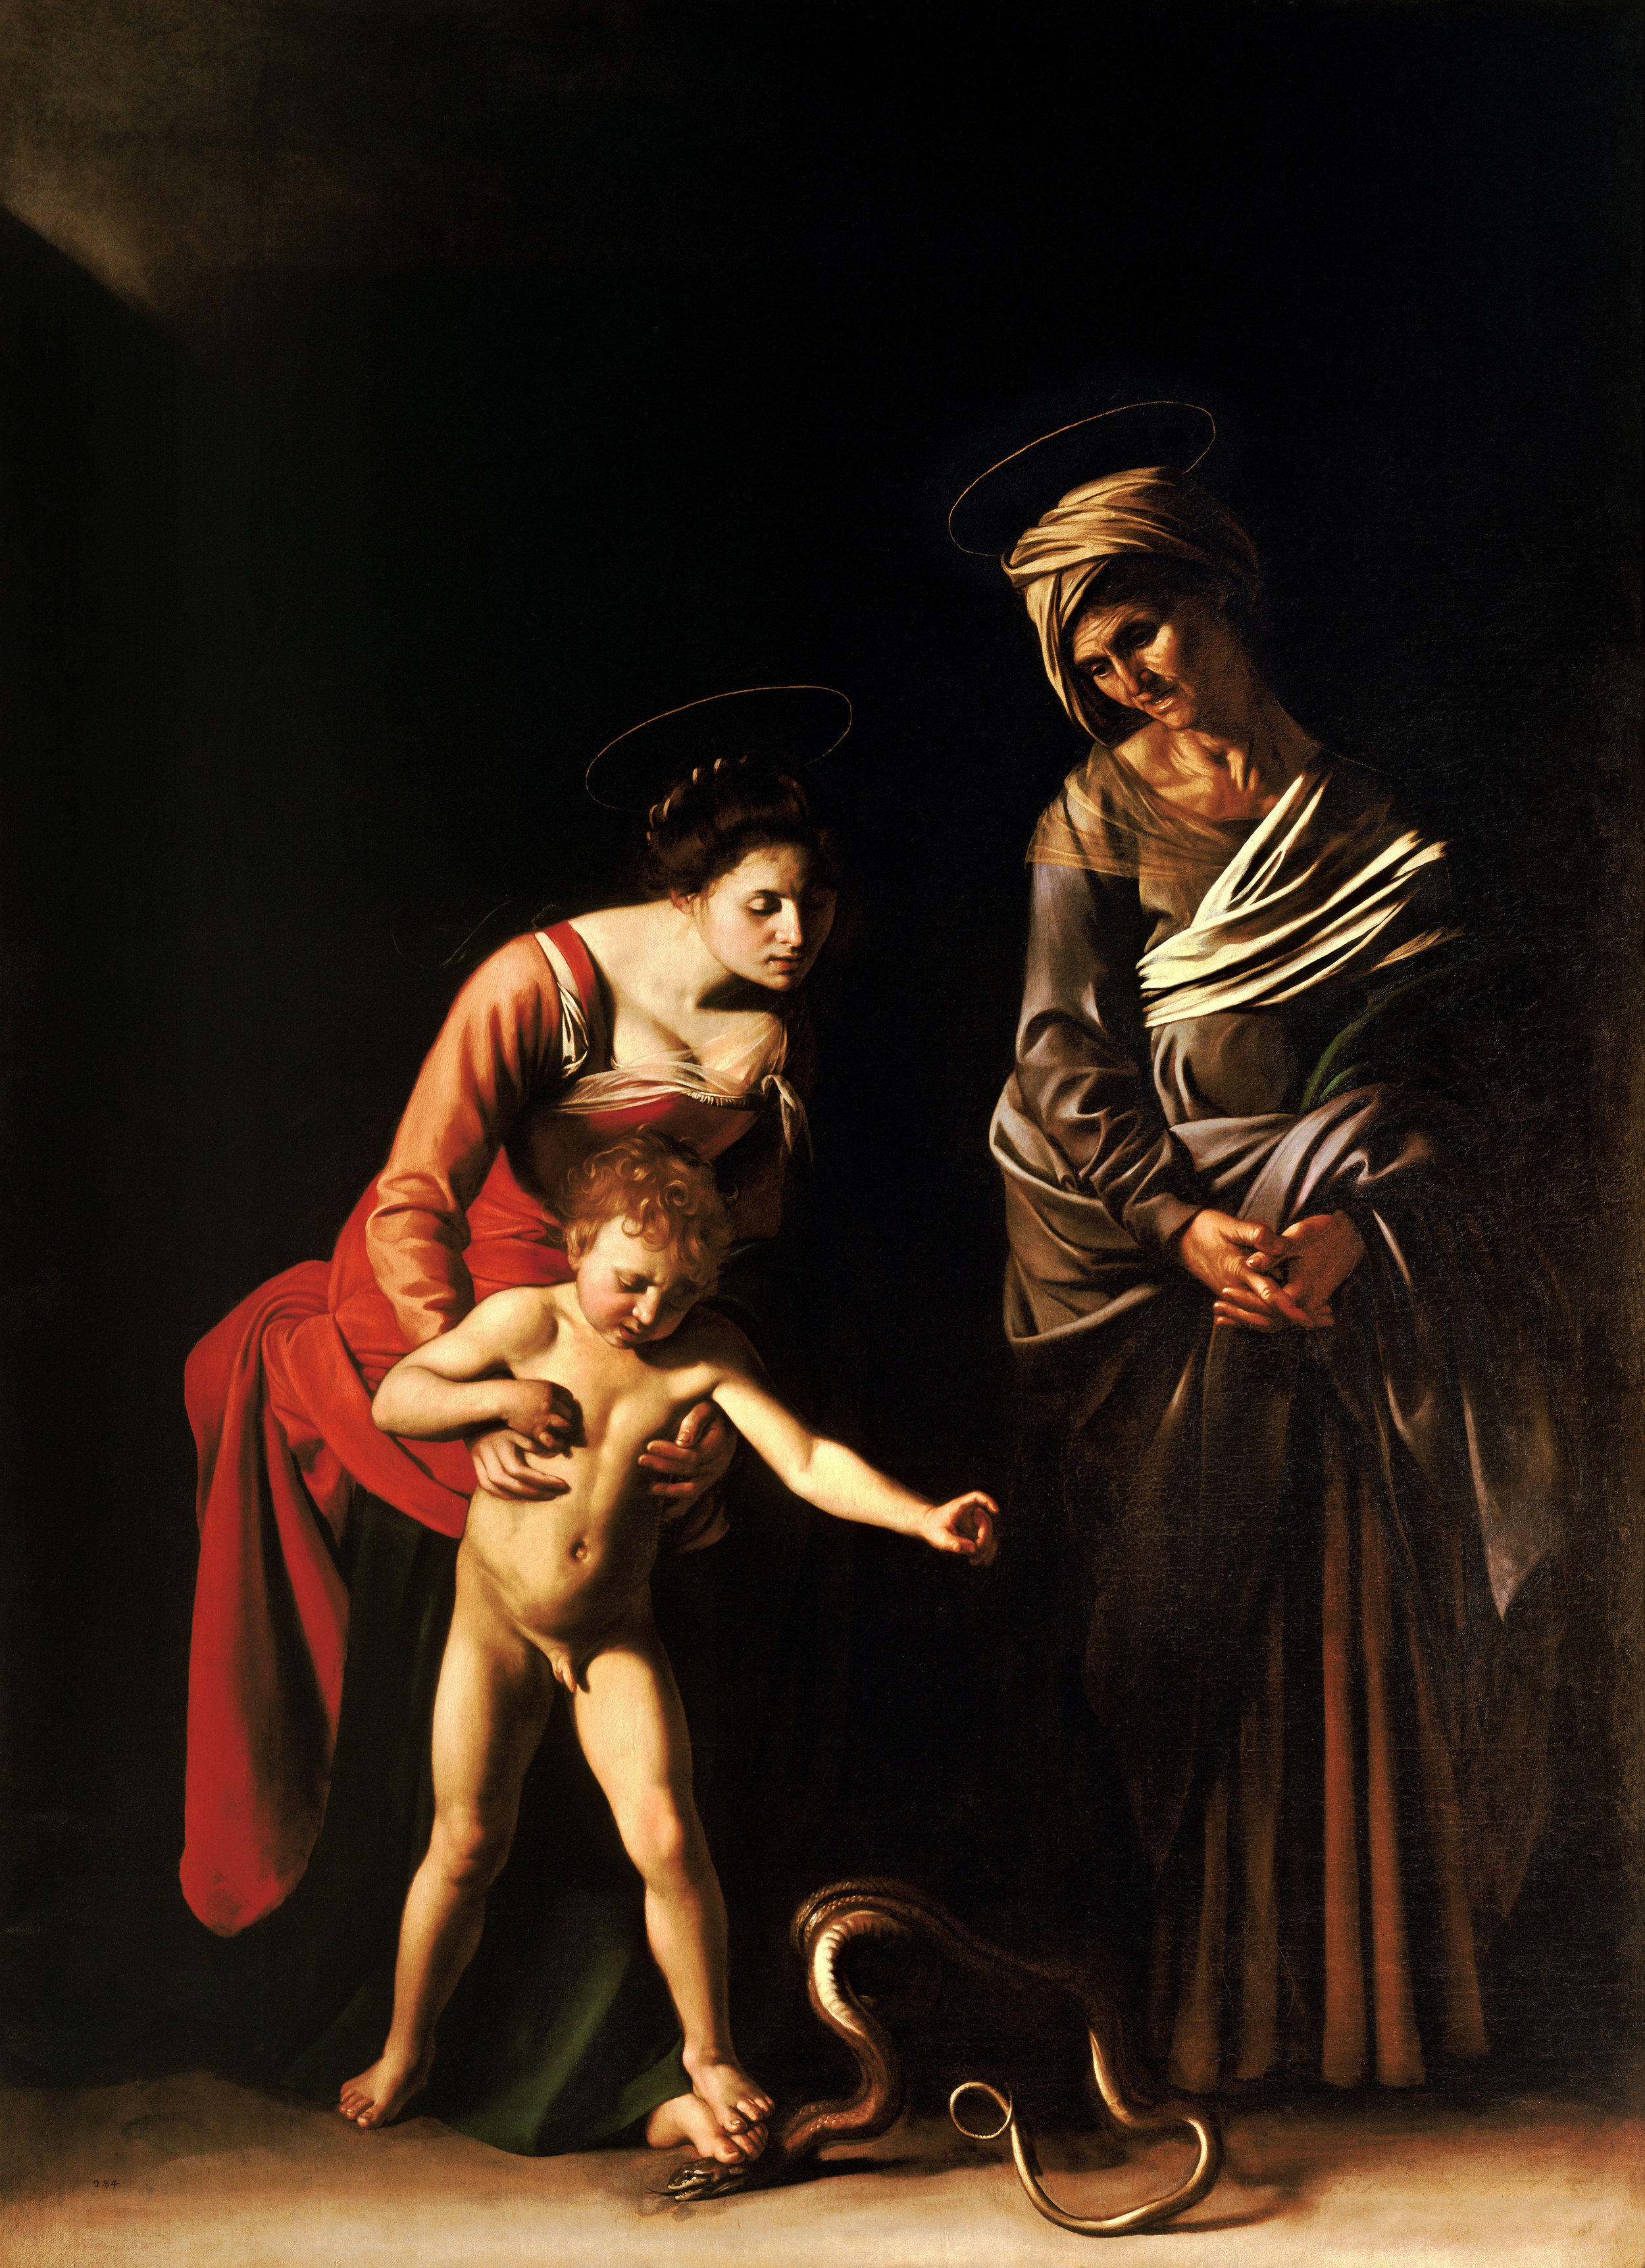 Madonna and Child with St. Anne   by Caravaggio, 1606.